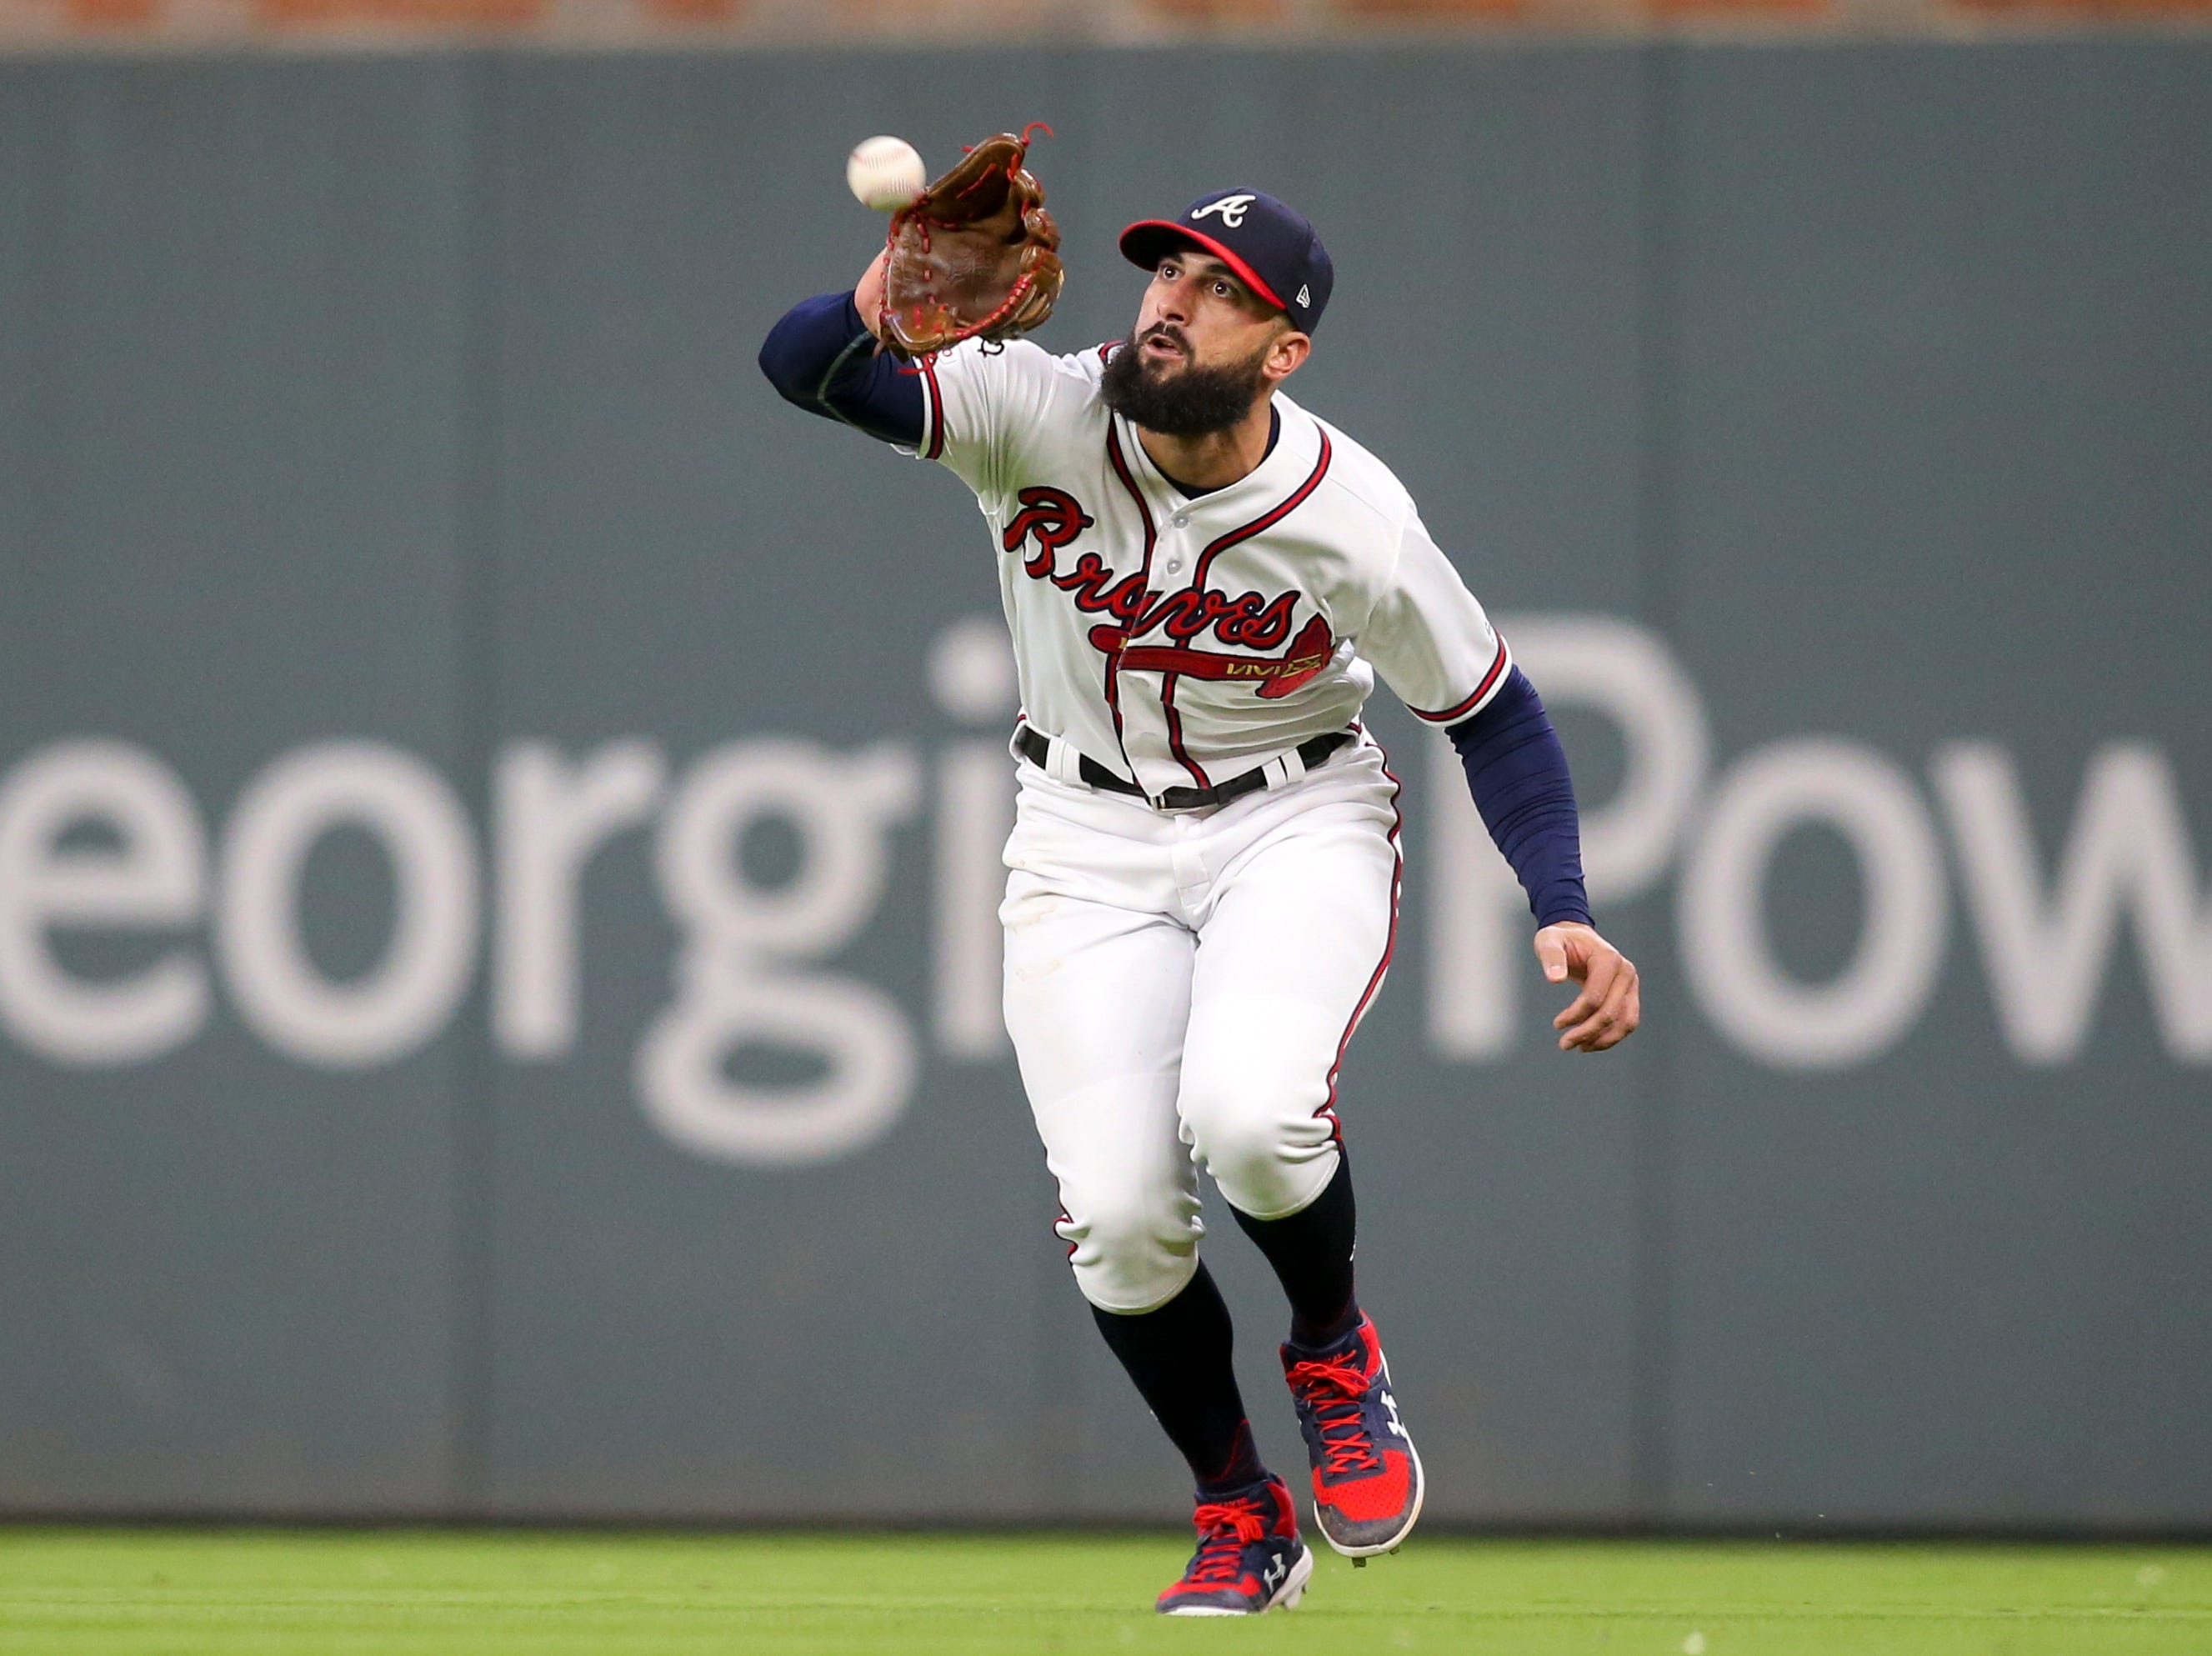 Apr 17, 2019; Atlanta, GA, USA; Atlanta Braves right fielder Nick Markakis (22) catches a fly ball against the Arizona Diamondbacks in the sixth inning at SunTrust Park. Mandatory Credit: Brett Davis-USA TODAY Sports